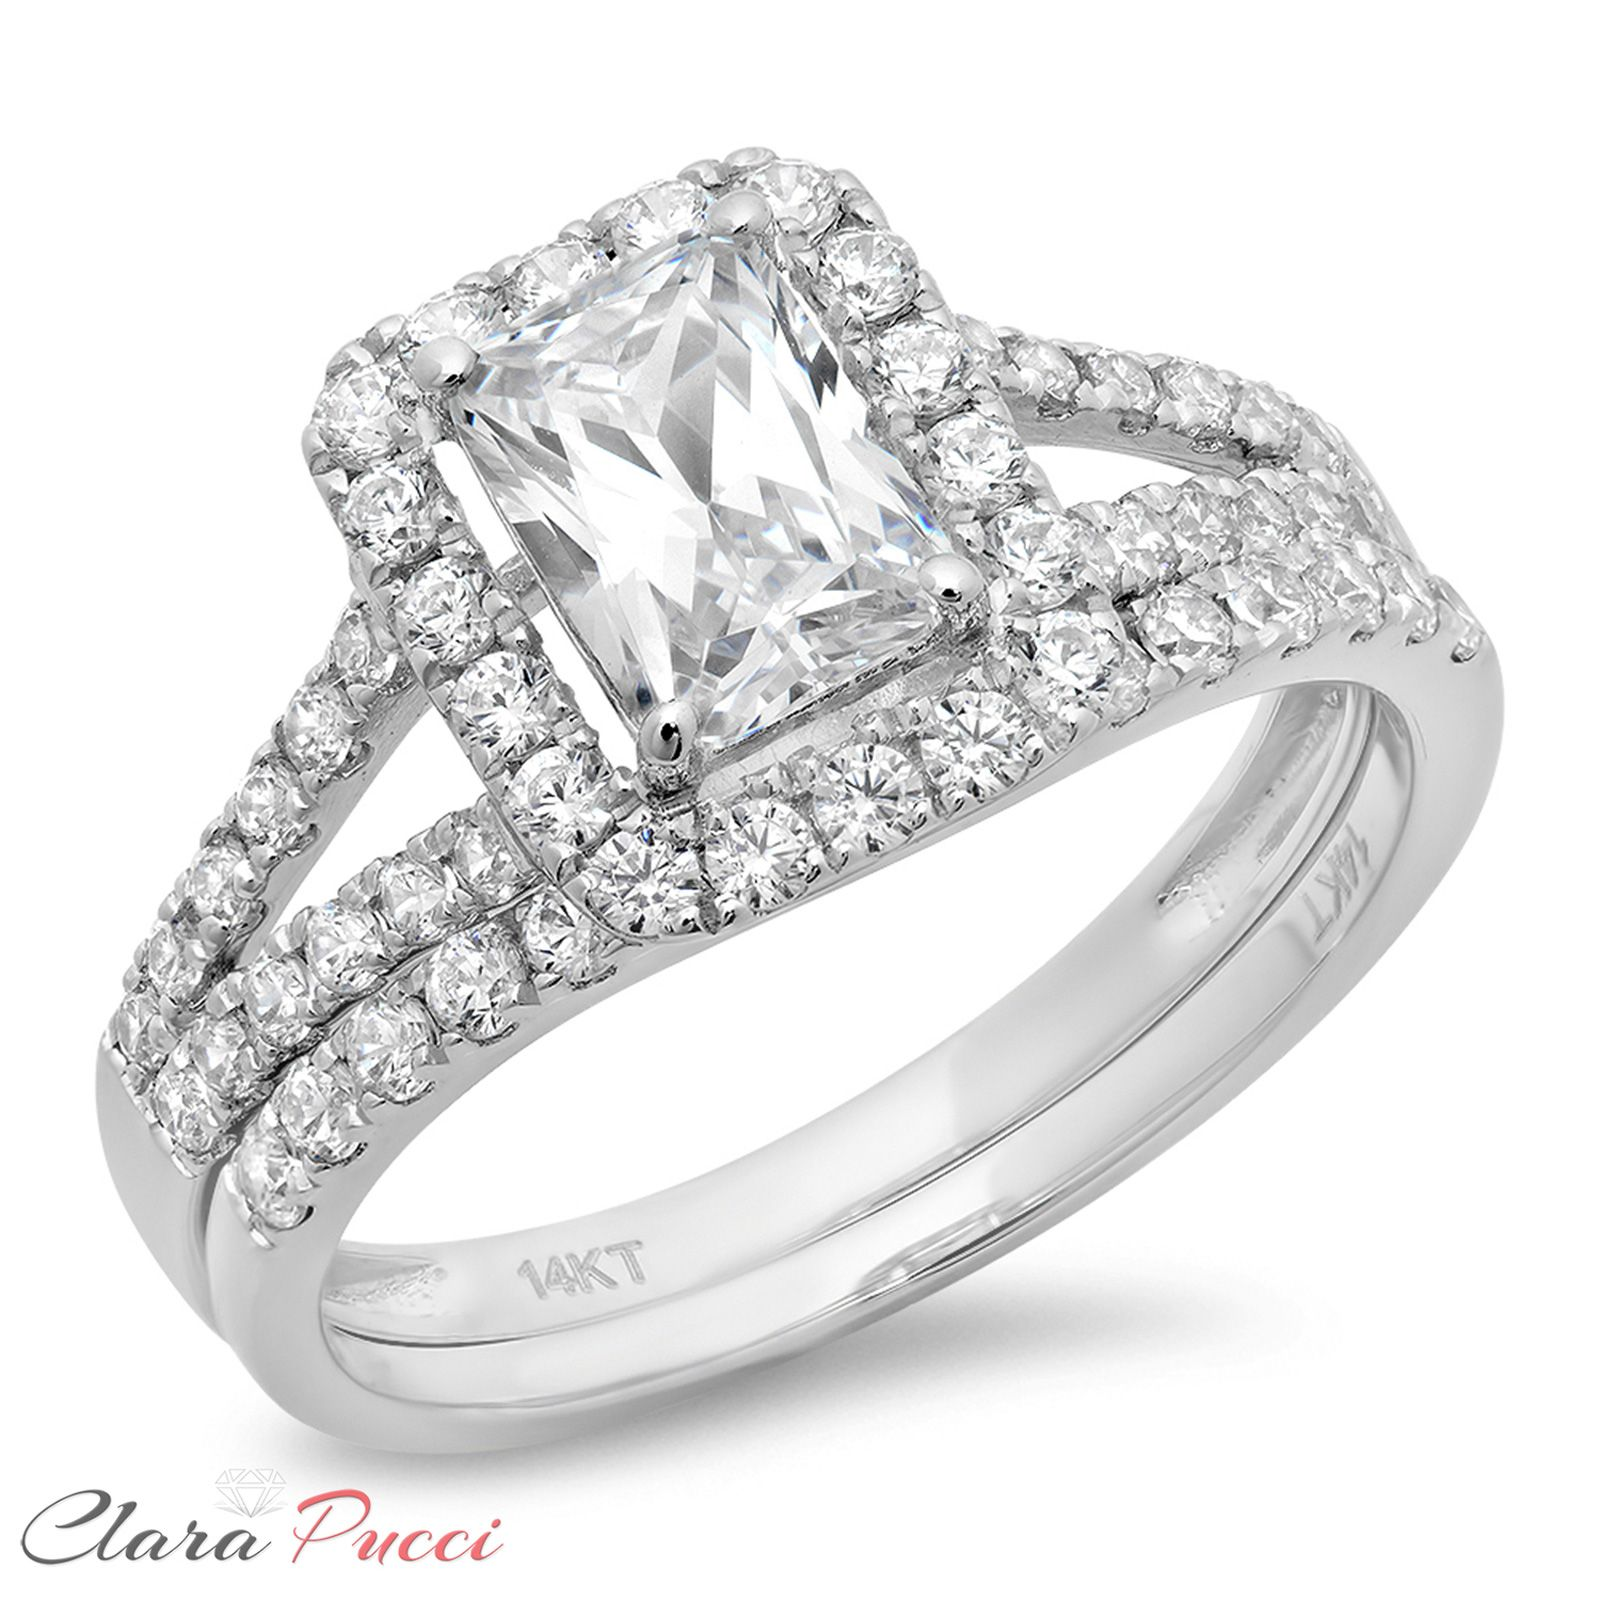 68107 jewelry 1.60 CT Emerald Cut Engagement Bridal Ring band set ...